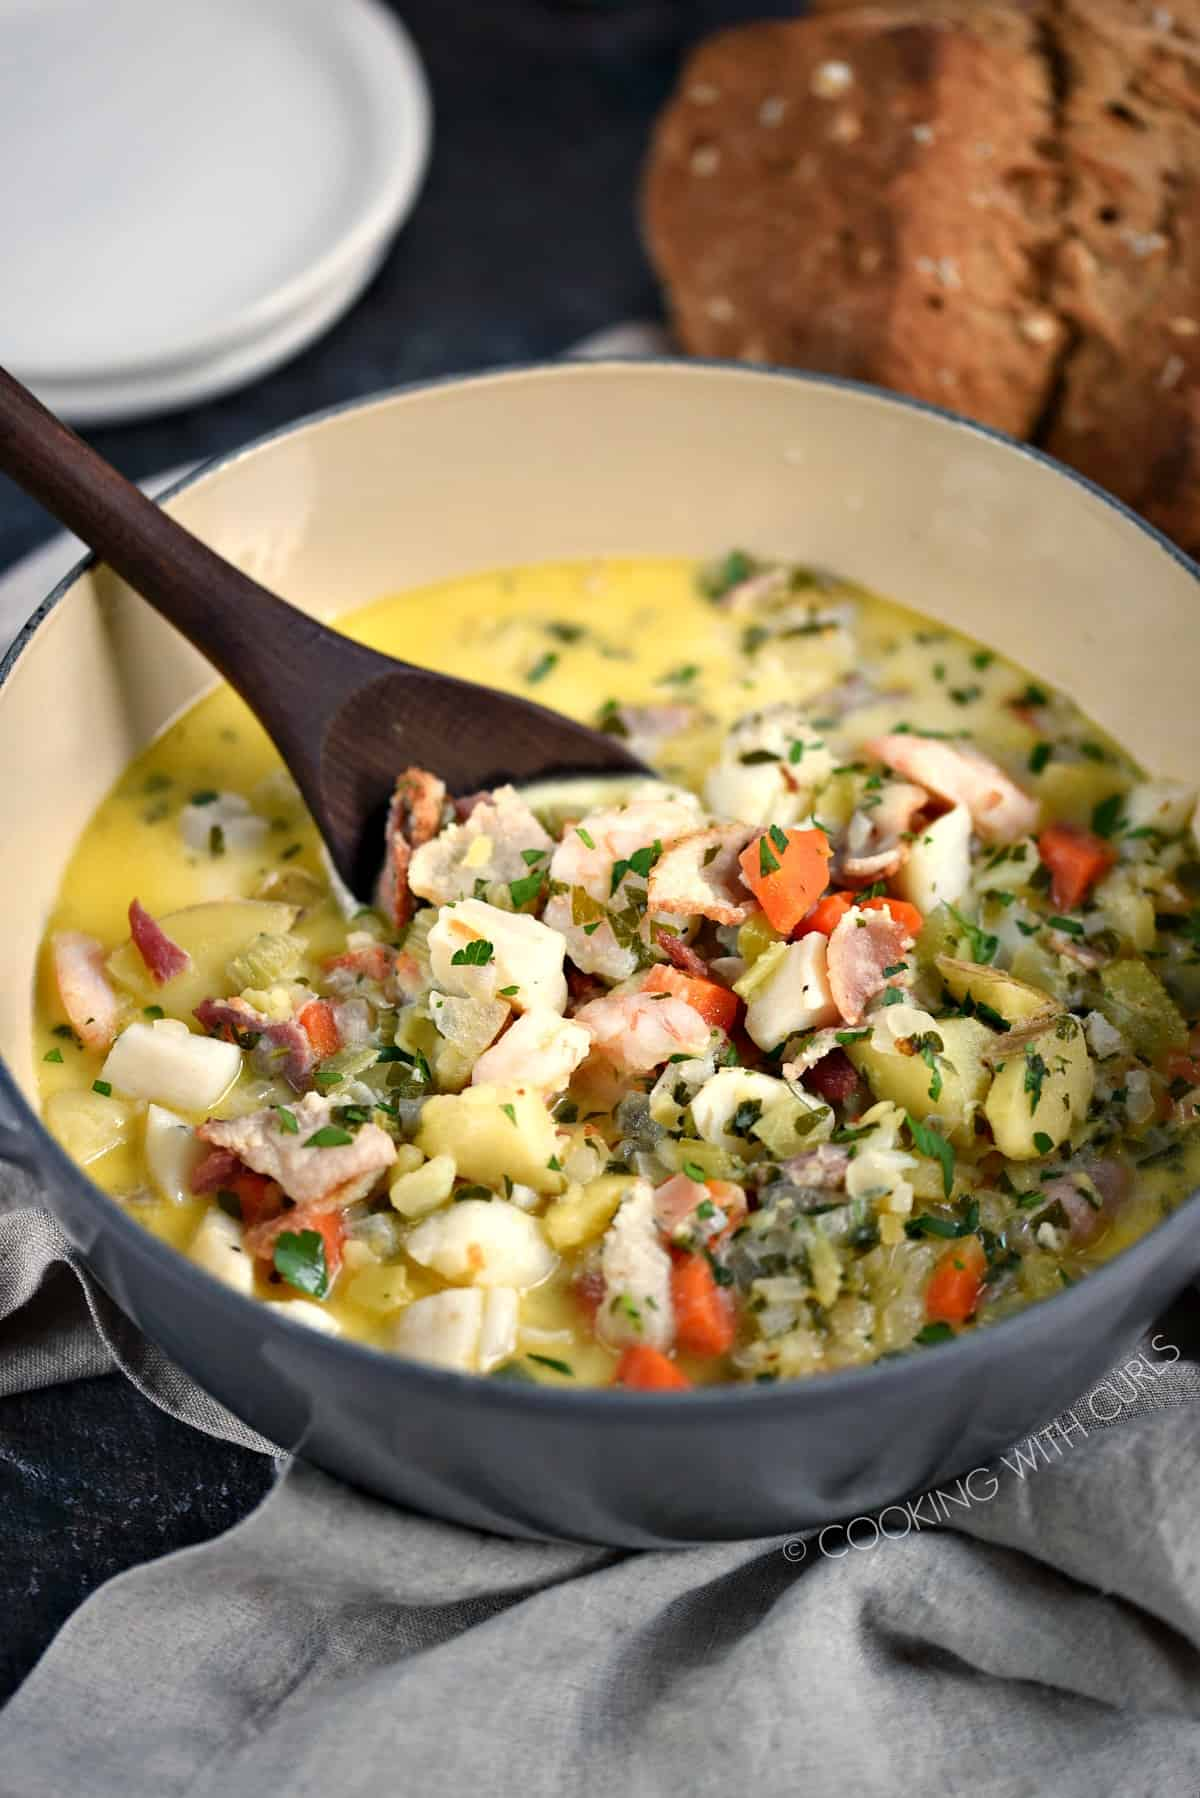 Creamy Seafood Chowder with a loaf of brown soda bread in the background.